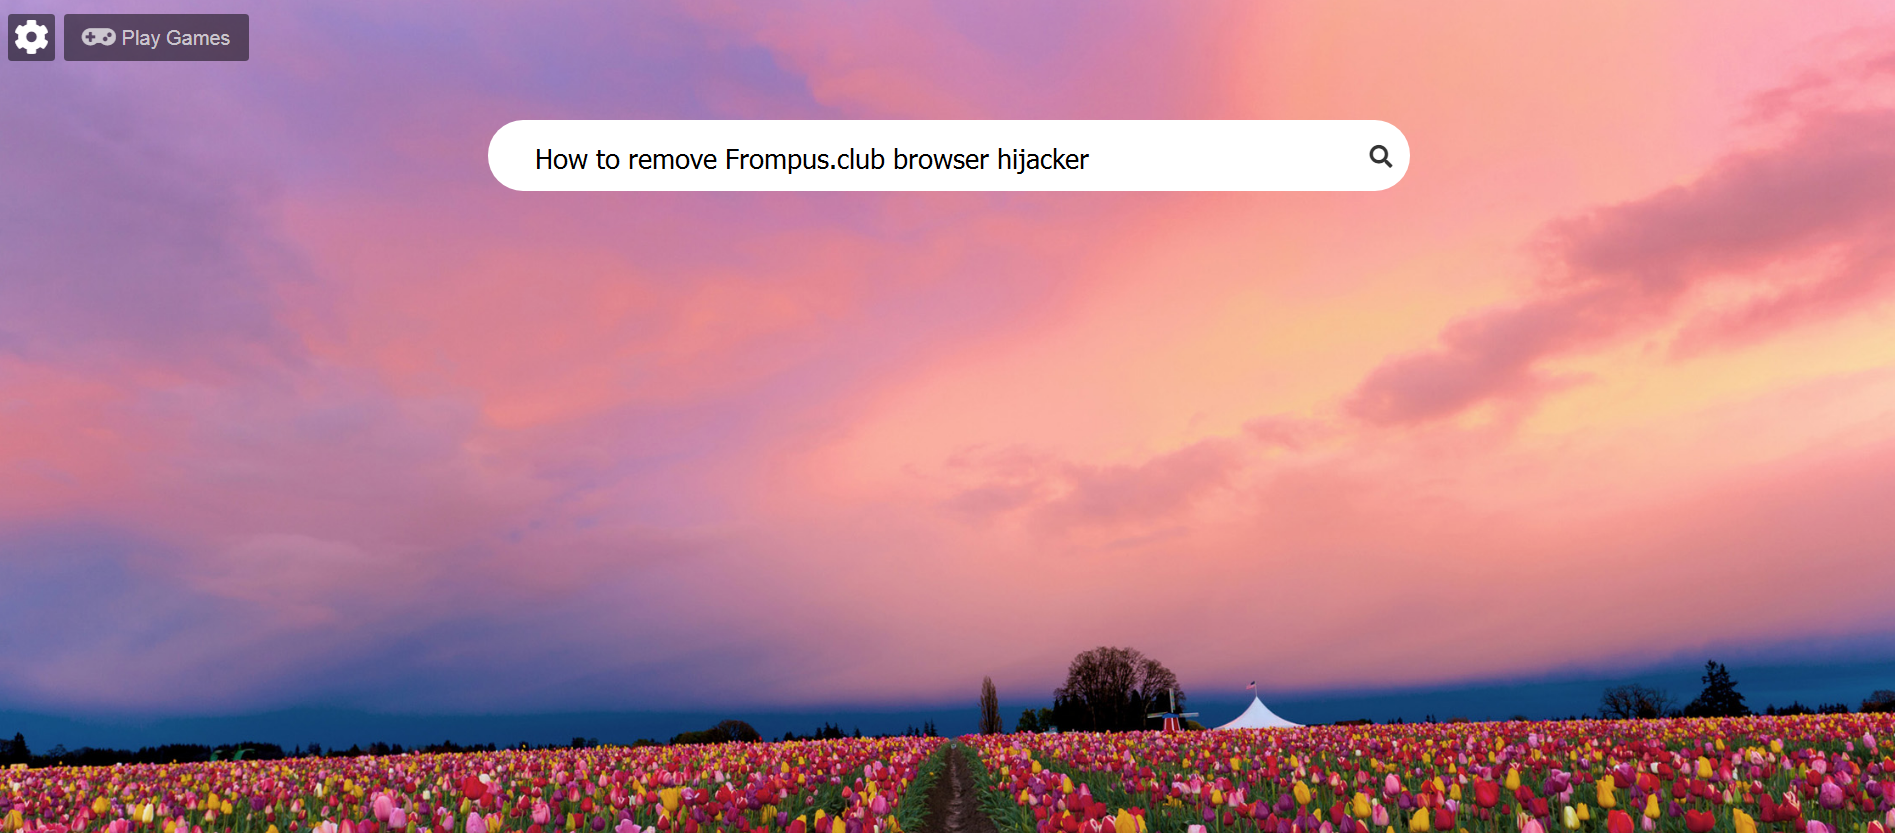 how to remove frompus.club browser hijacker